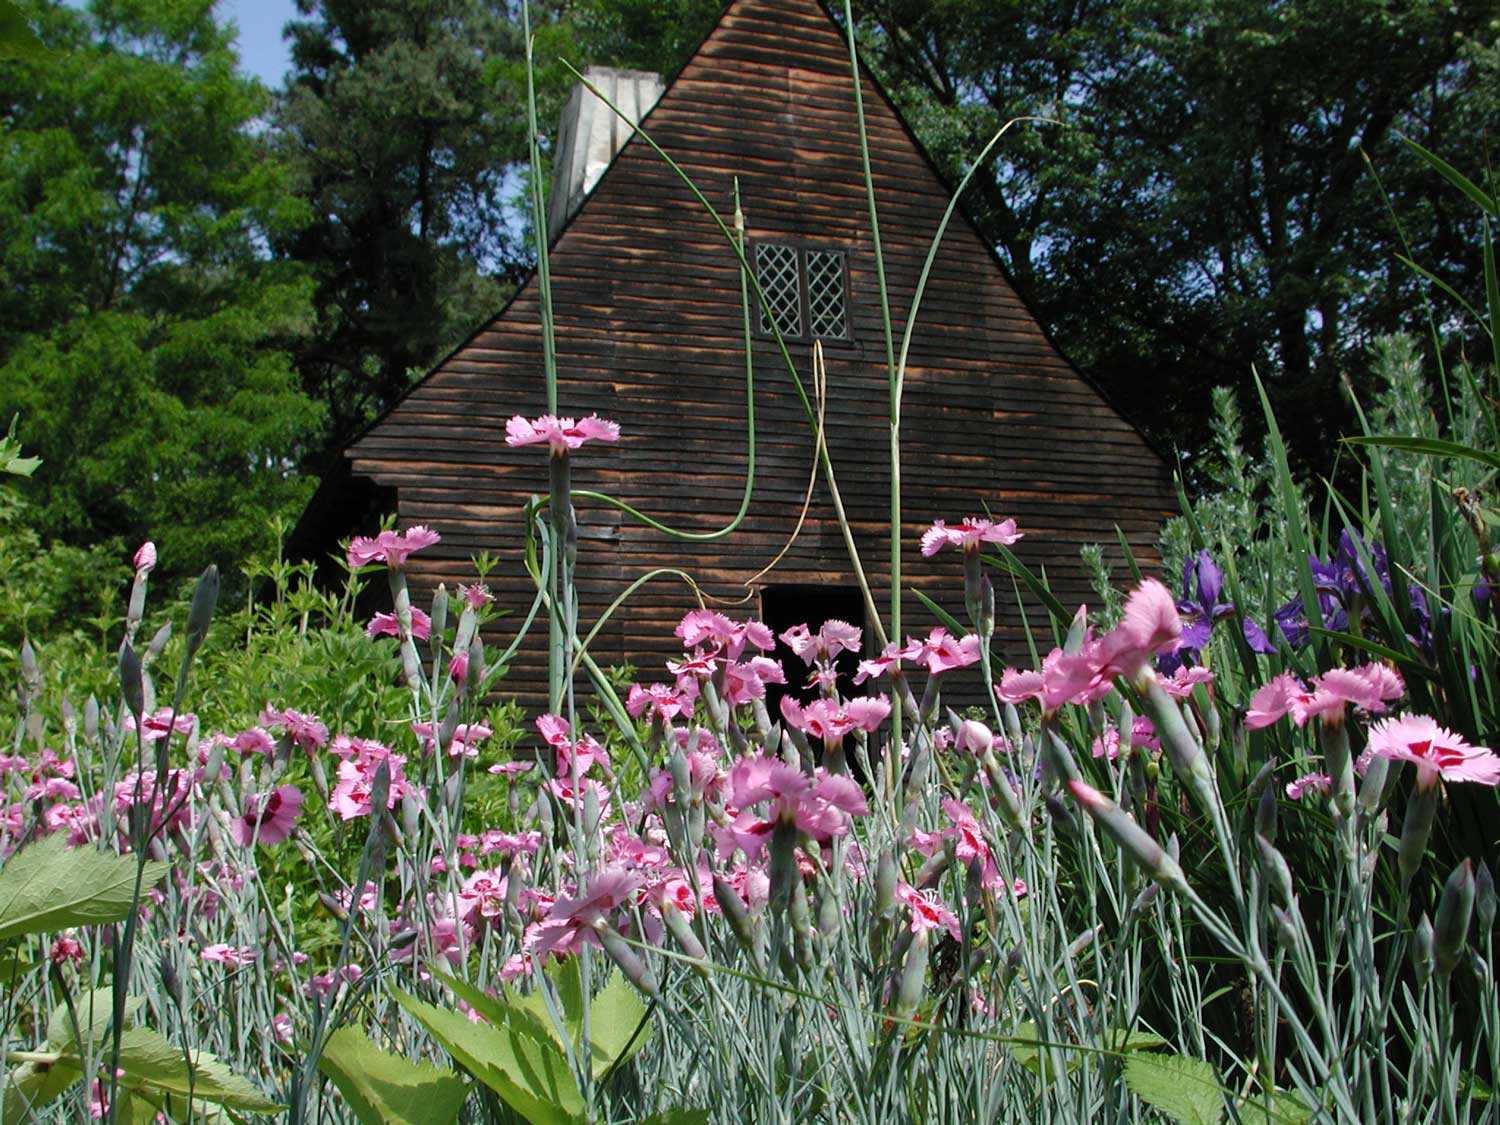 The kitchen garden is filled with seasonal color